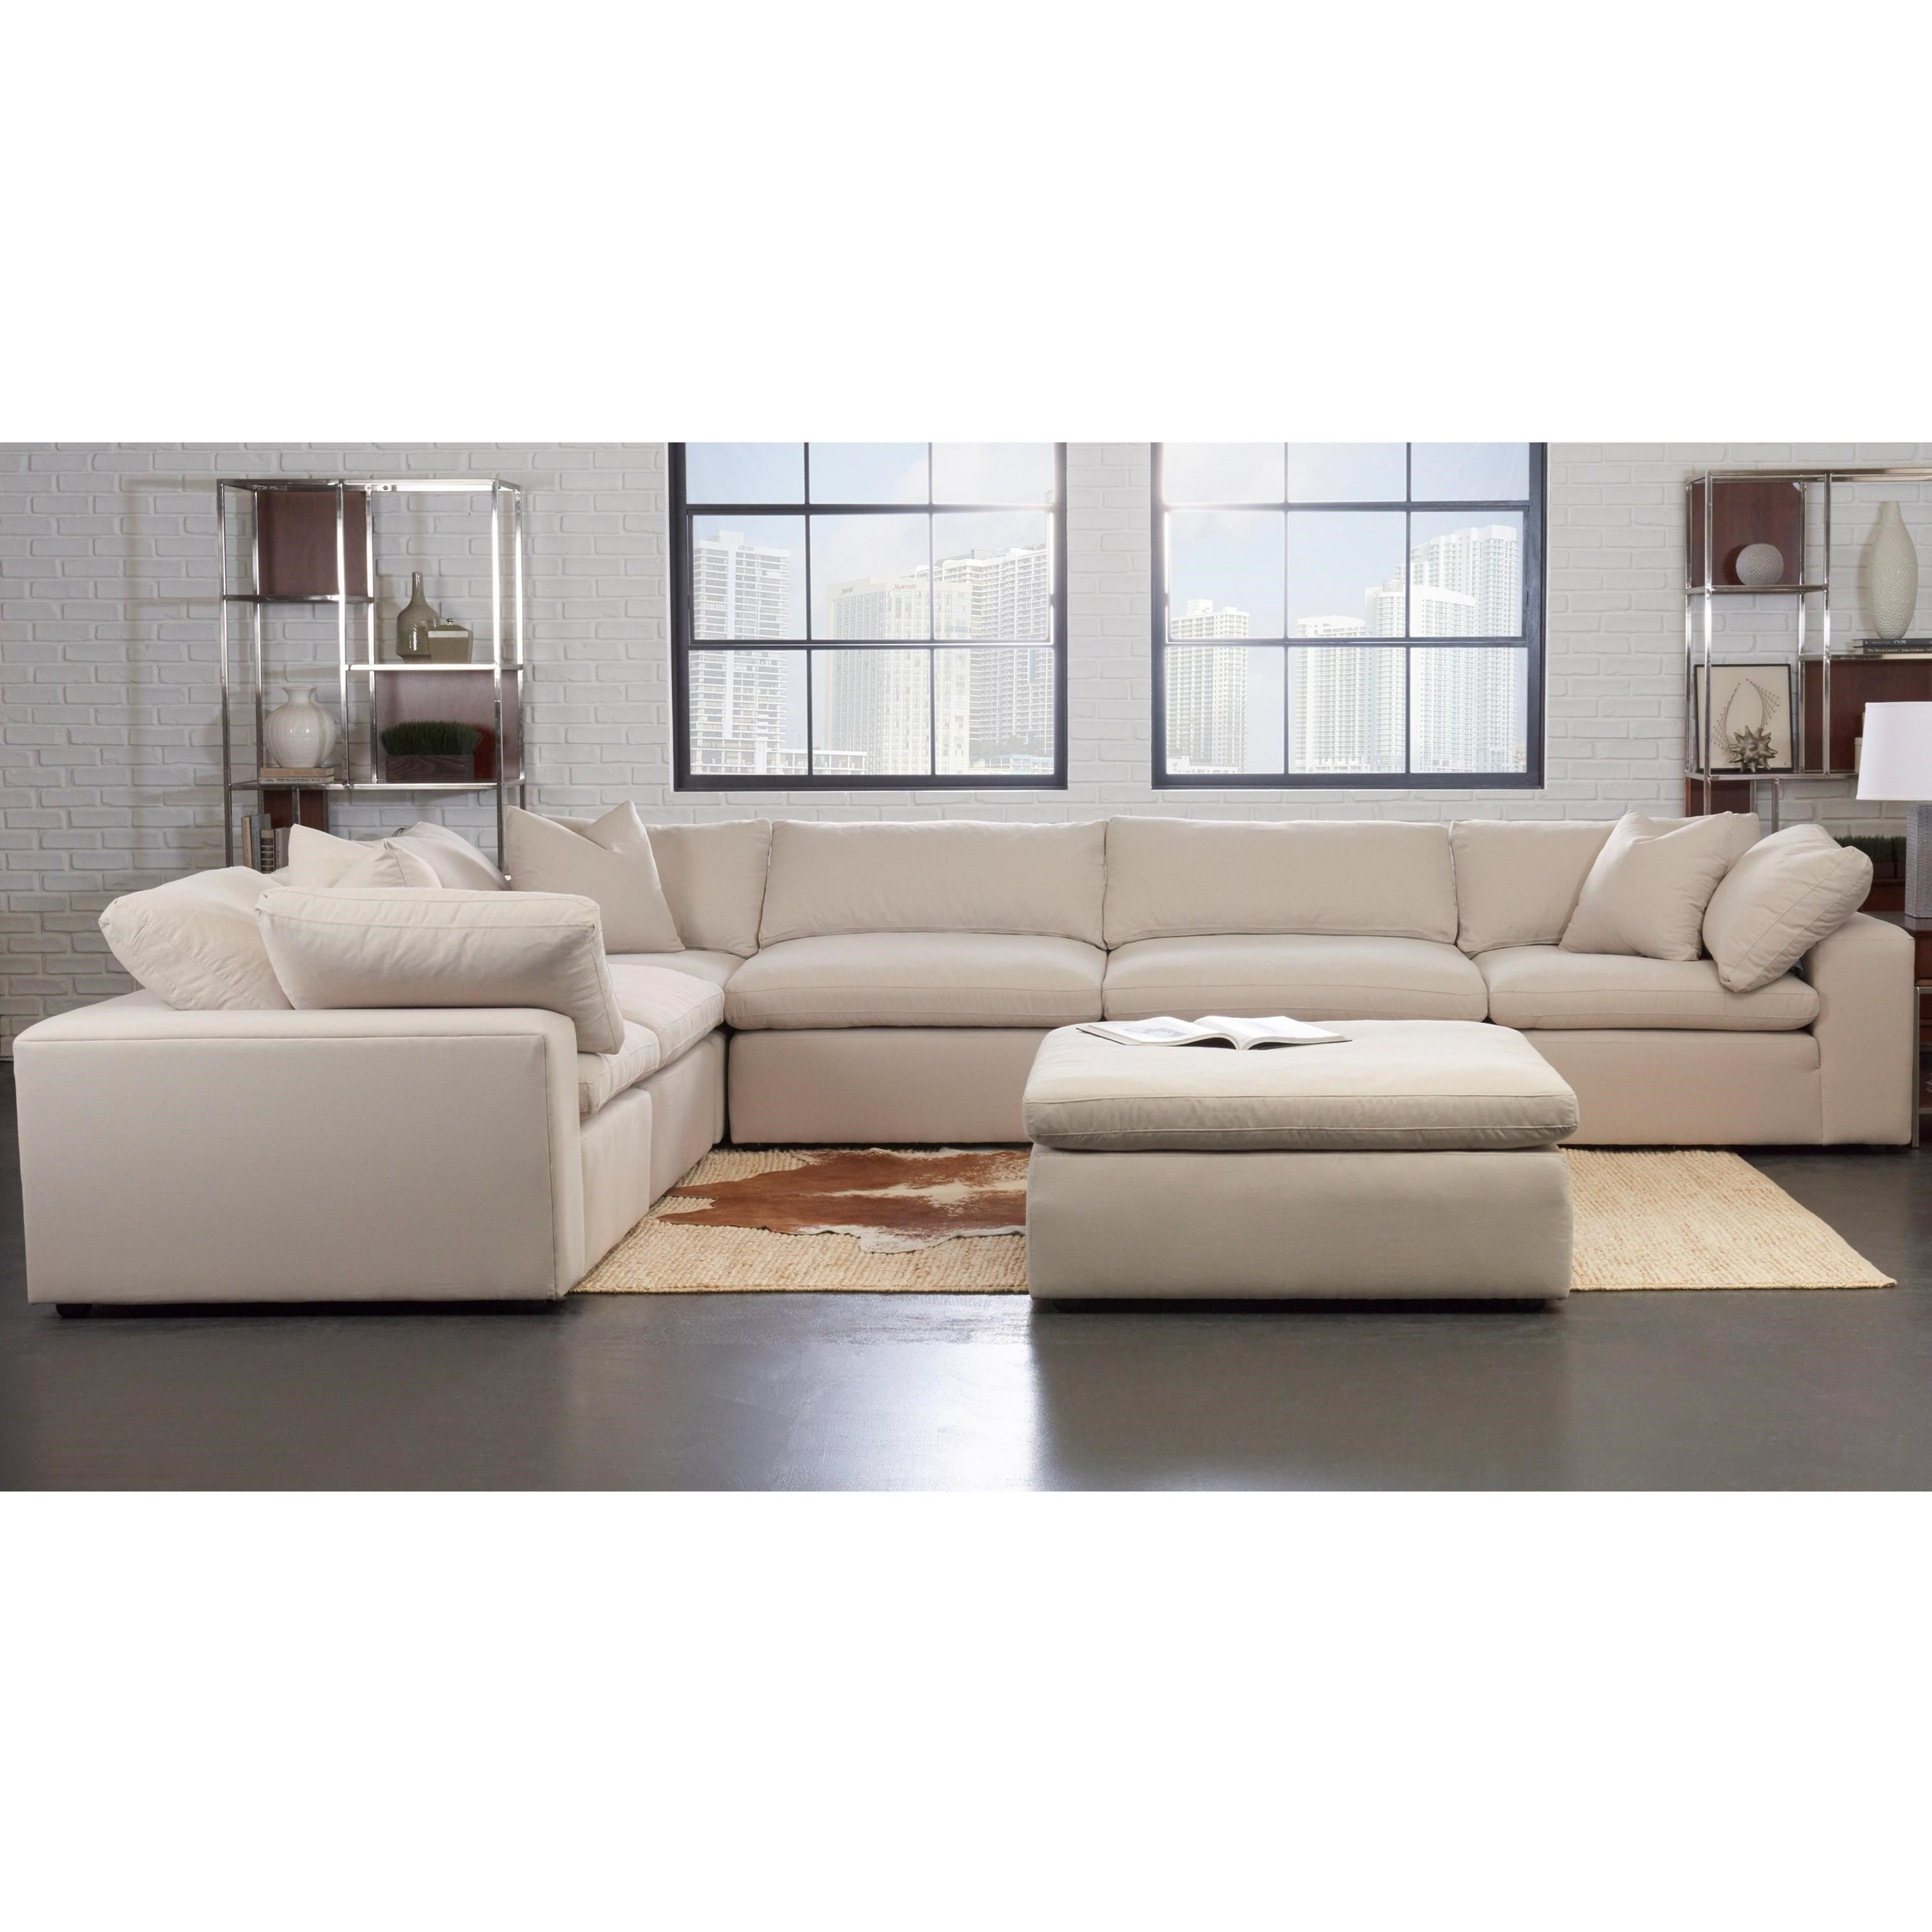 Monterey Contemporary 6 Pc Modular Sectional Sofa By Klaussner